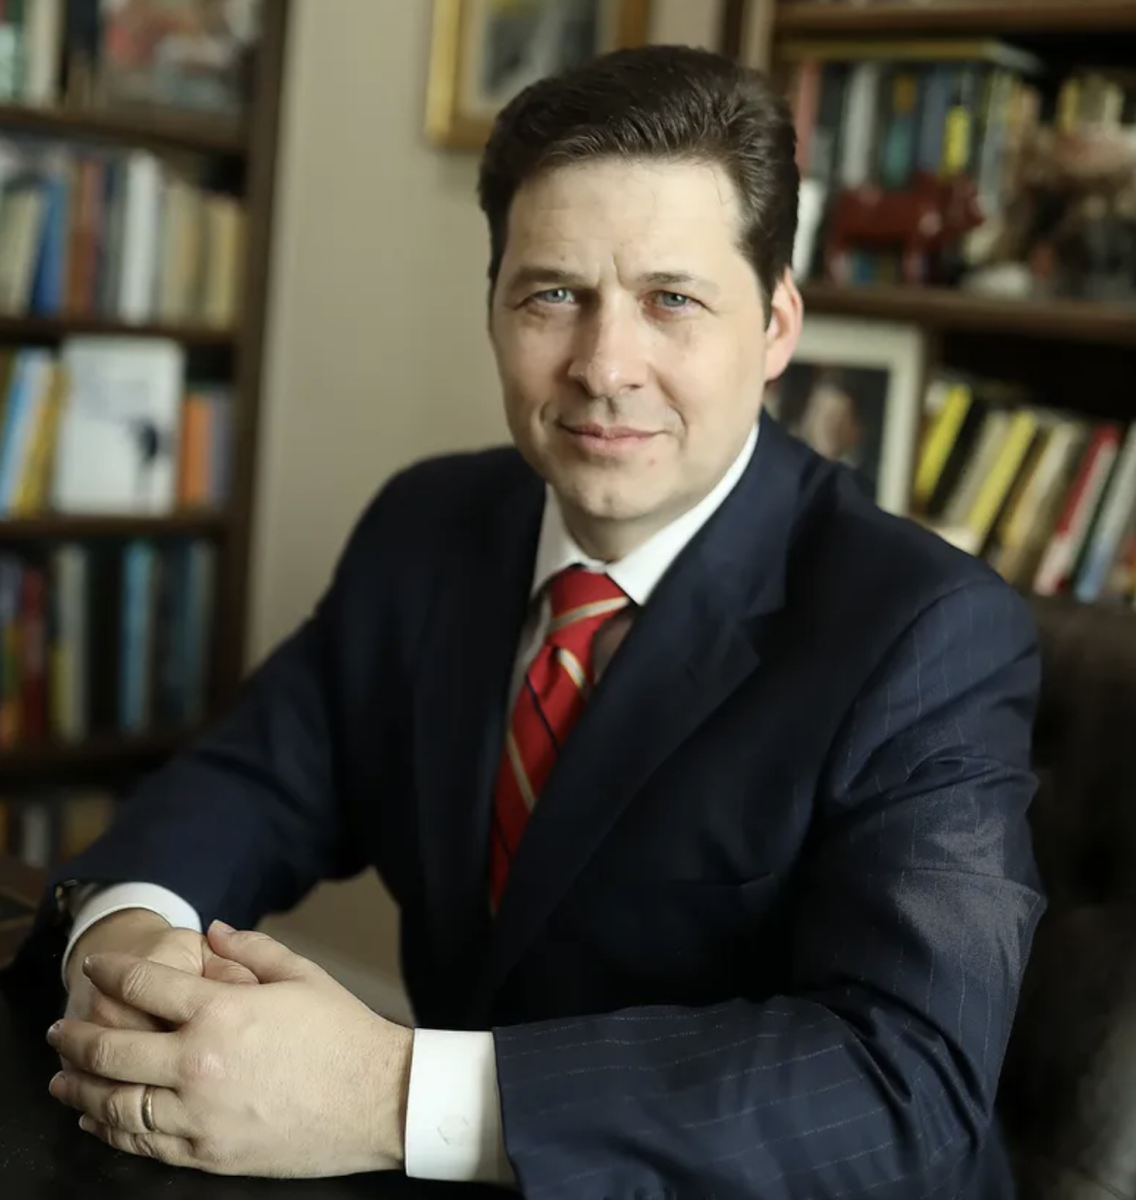 Shane Jett, a candidate for Oklahoma state senate. (Photo courtesy of Jett's campaign website)